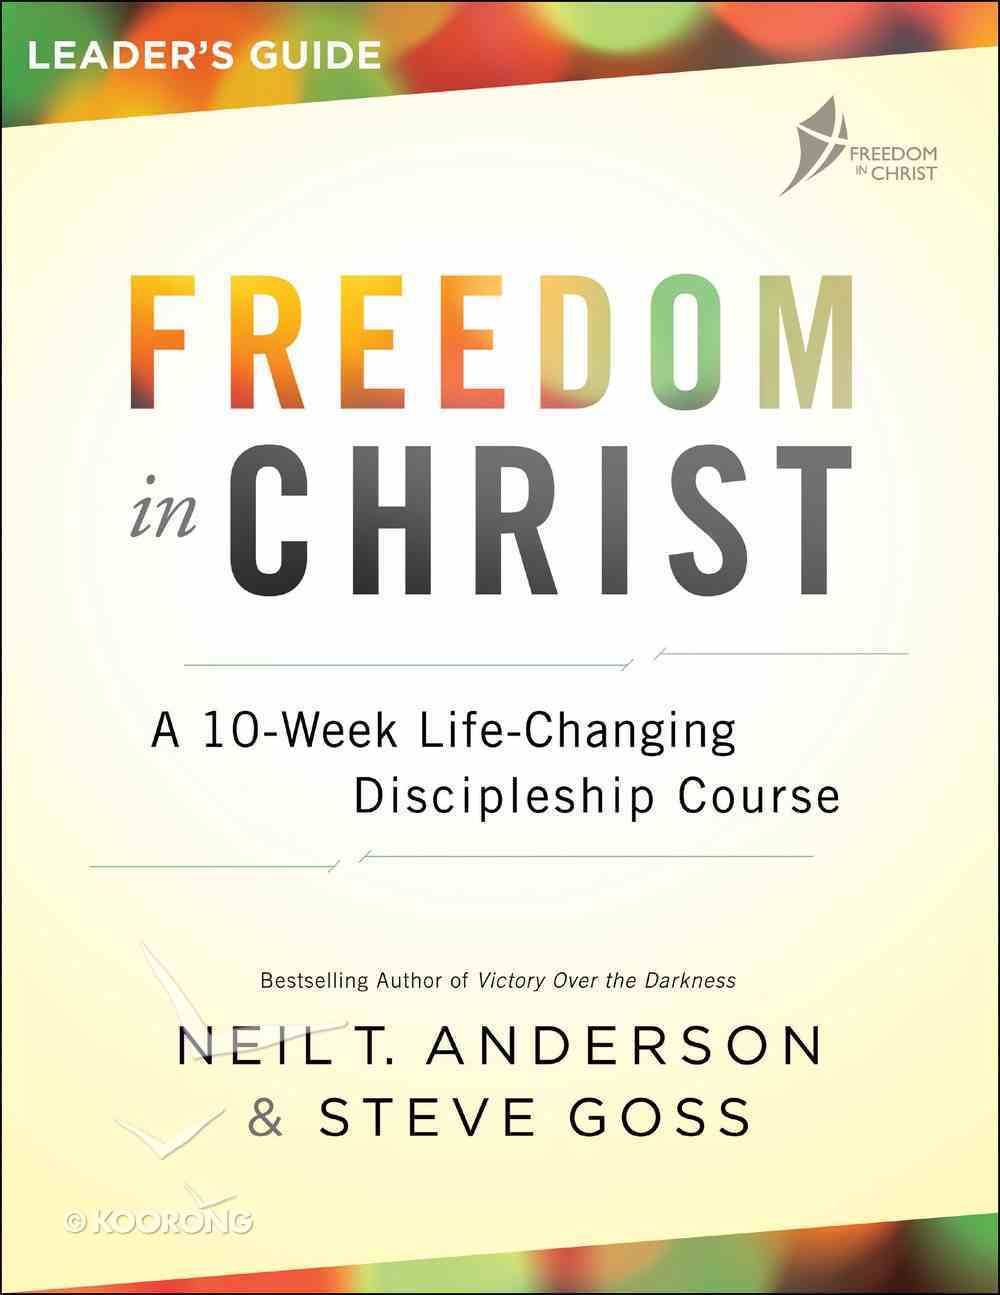 Freedom in Christ Leader's Guide eBook